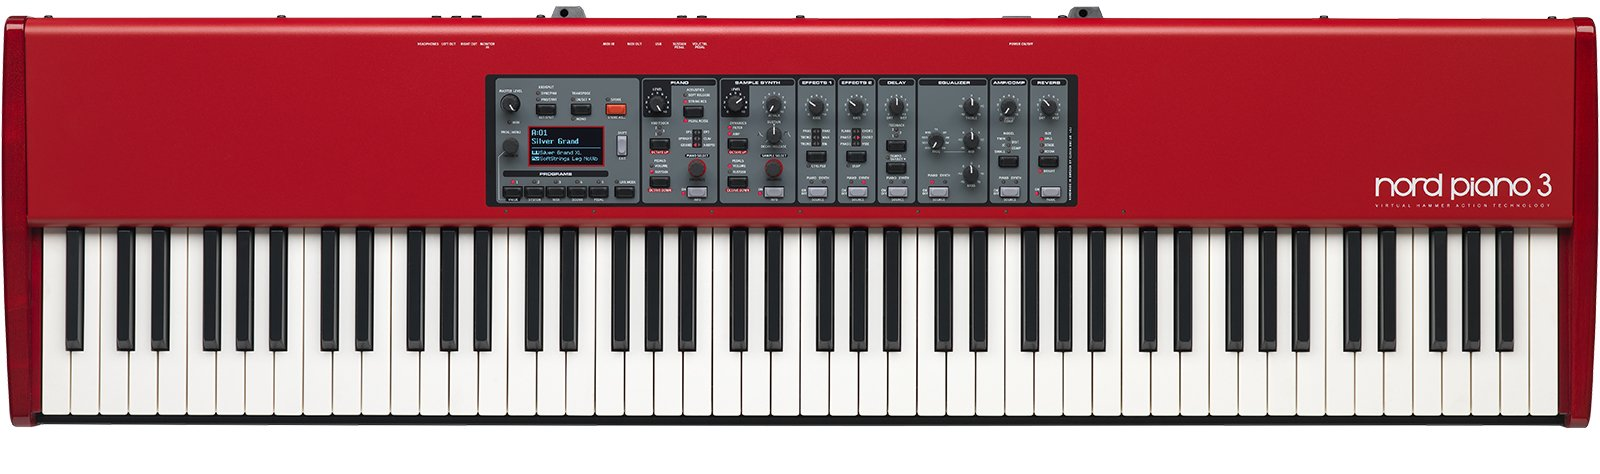 Nord USA Nord 3 88-Key Stage Piano with 1GB of Sample Memory (AMS-NPIANO3) by Nord